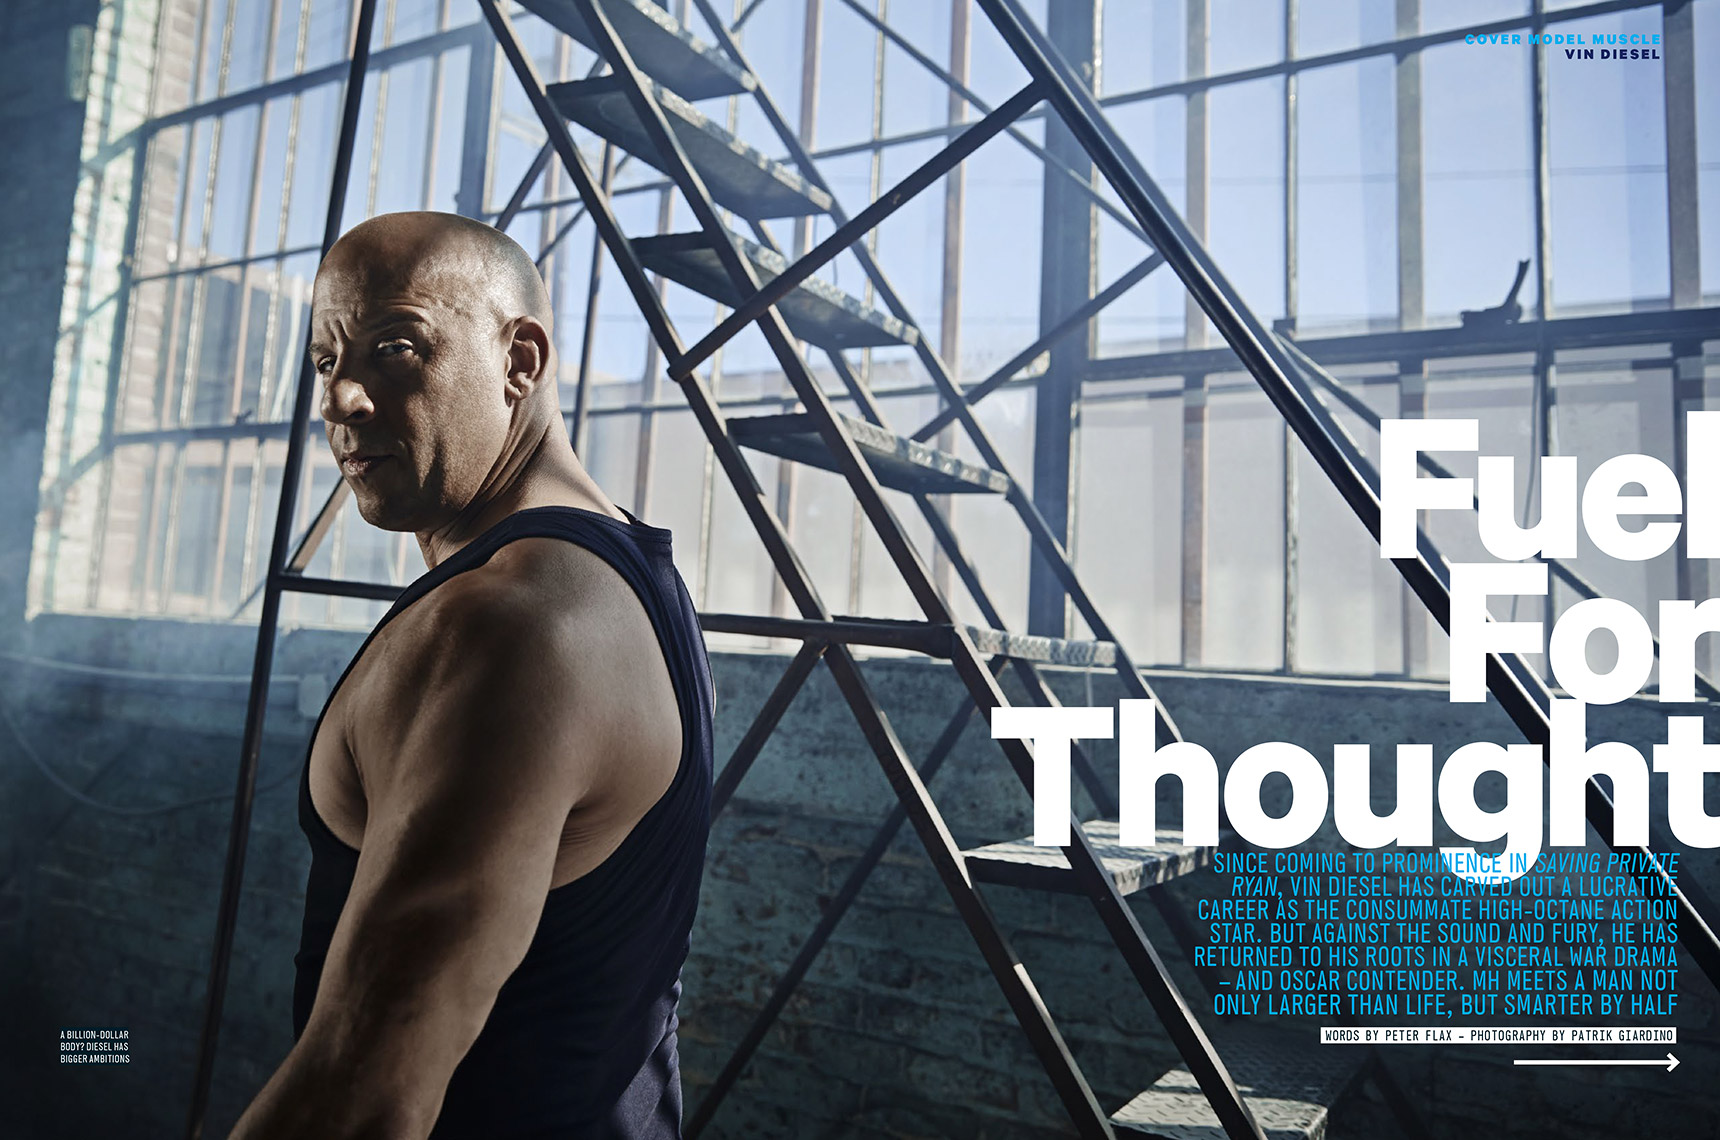 Cover-Model_-Vin-Diesel_pdf_spread-1